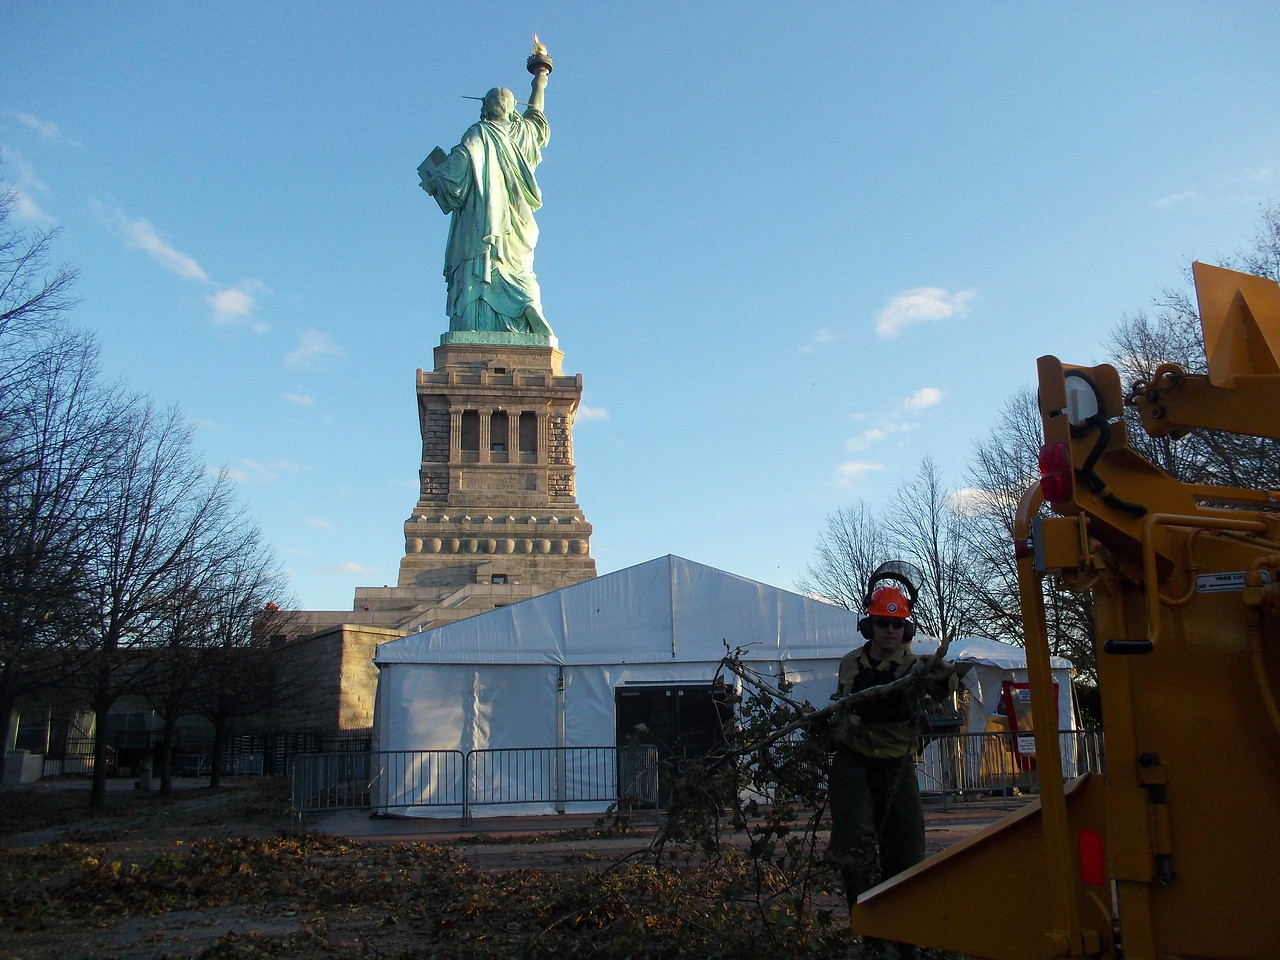 An AmeriCorps Cape Cod member feeds branches into a wood chipper during cleanup efforts on Liberty Island.